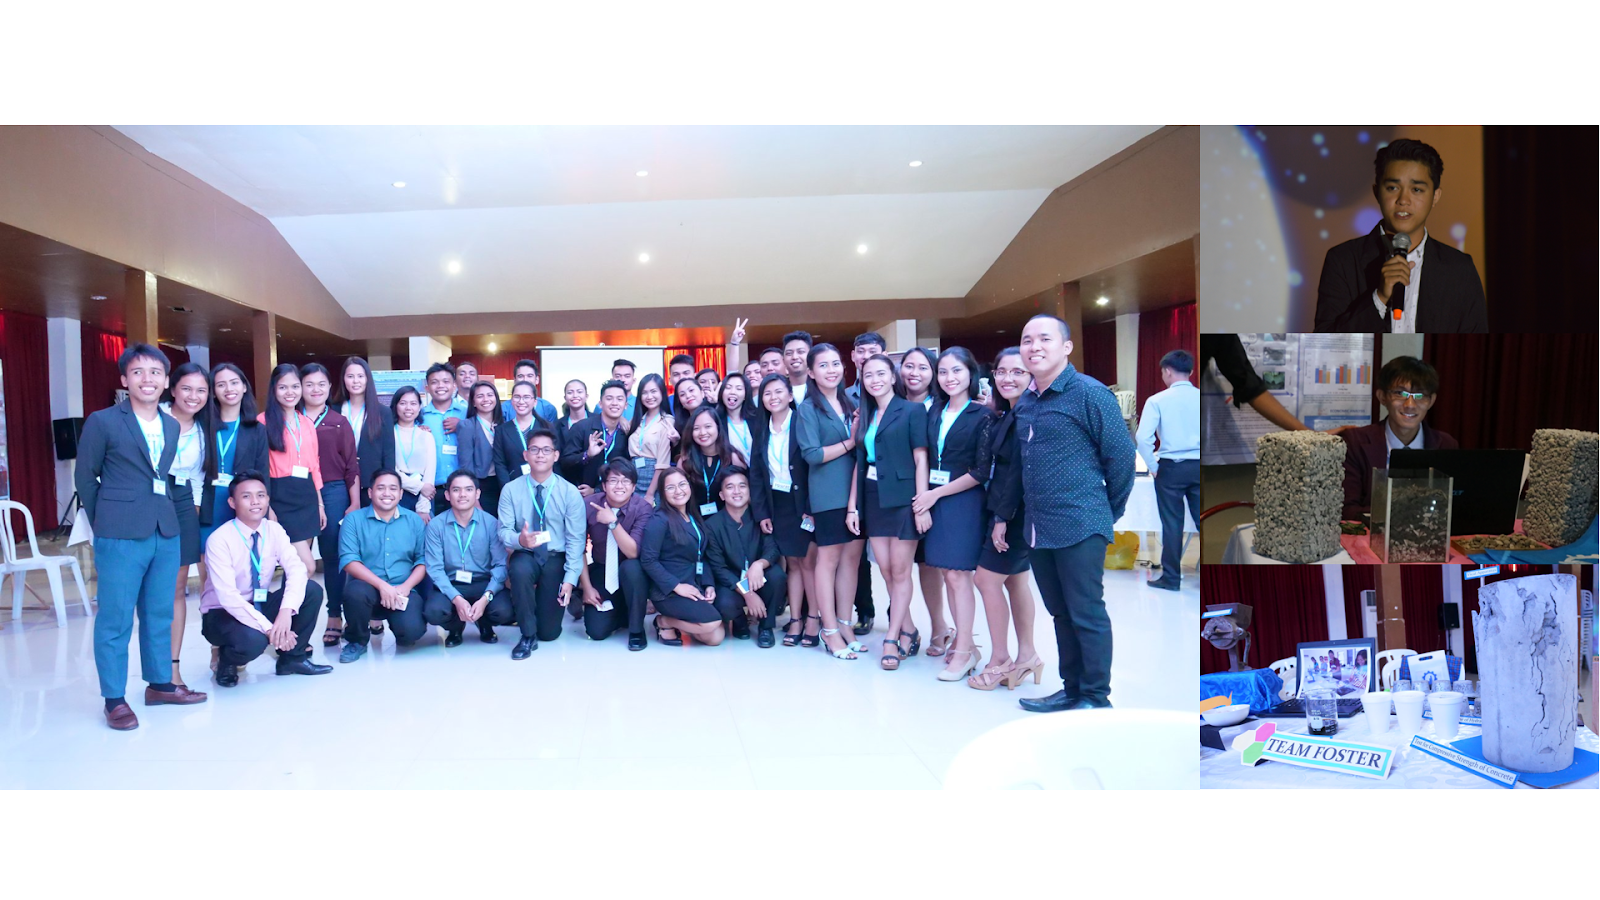 CAREER OPP. Pioneering batch class moment with their meteorology instructor, Mr. Charlindo S. Torrion.